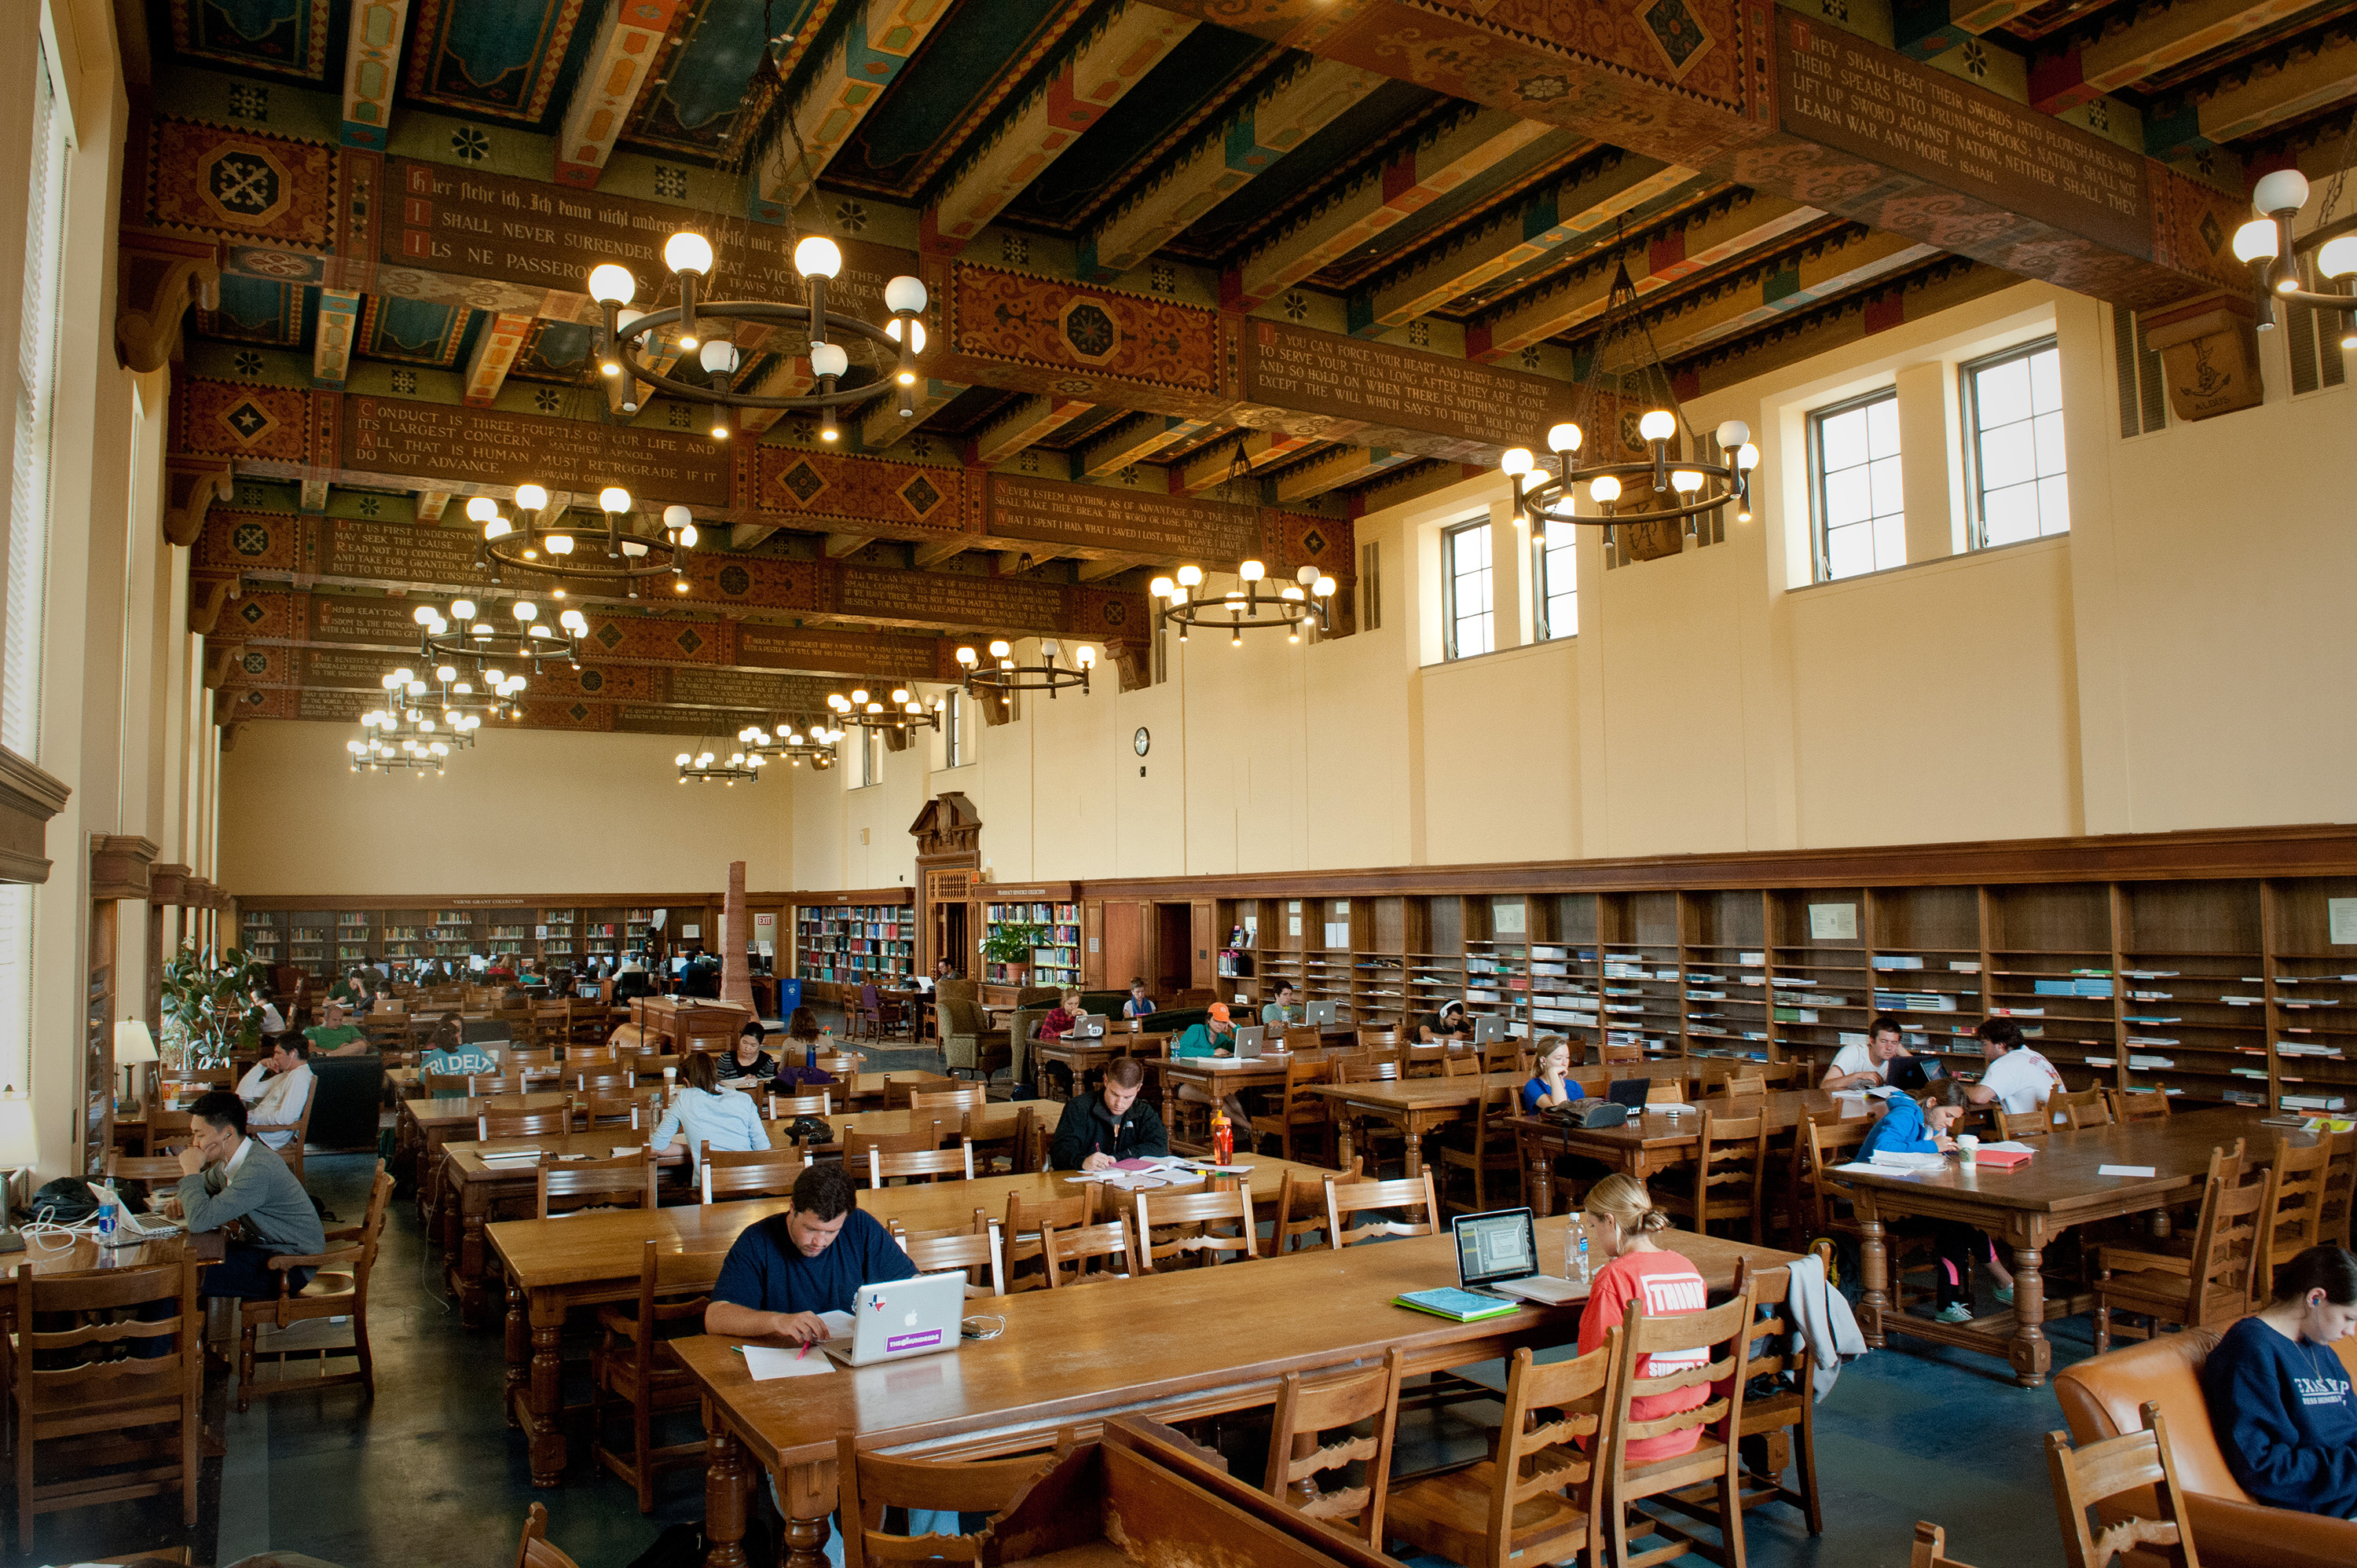 The Life Sciences Library in the UT Tower.